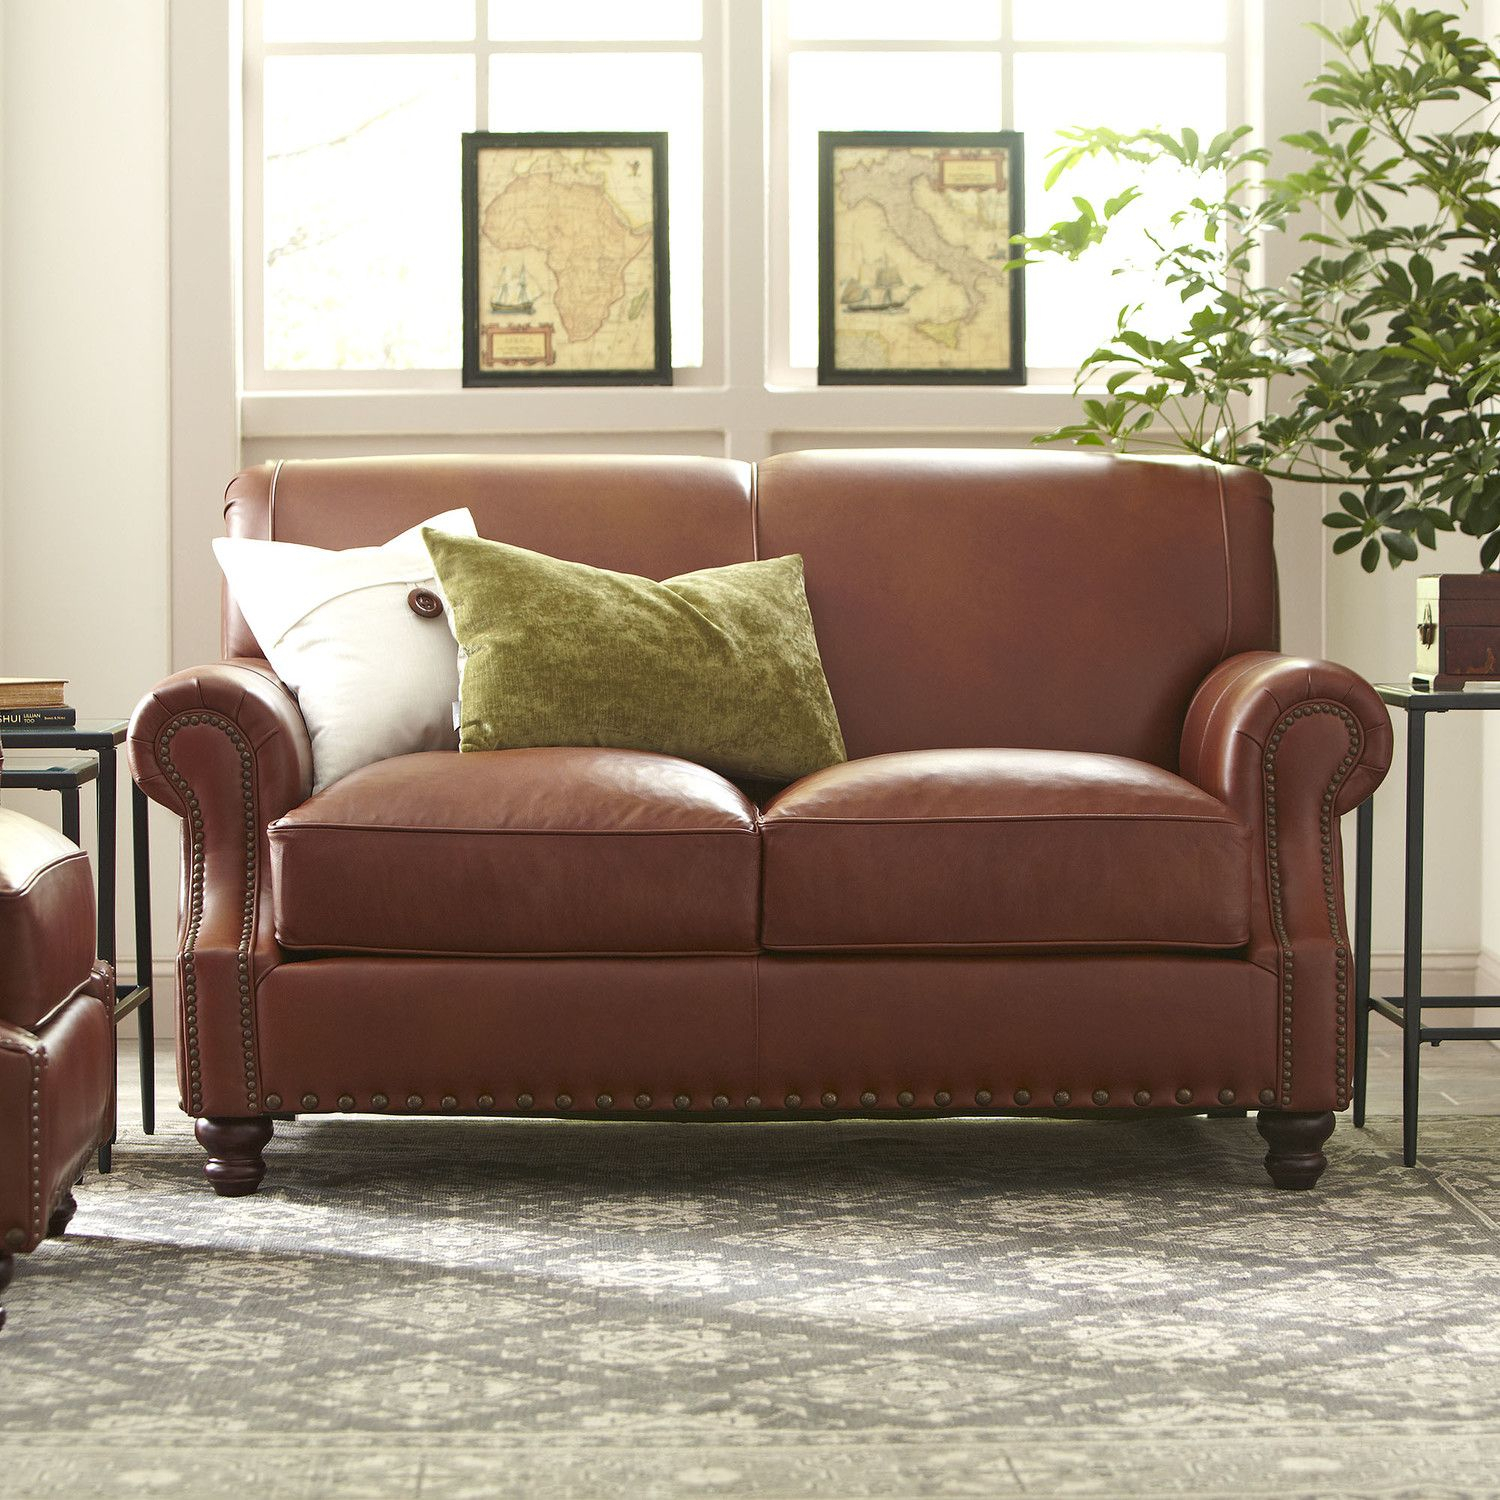 Landry Leather Loveseat |Room | Pinterest | Leather Loveseat Intended For Landry Sofa Chairs (Image 16 of 25)